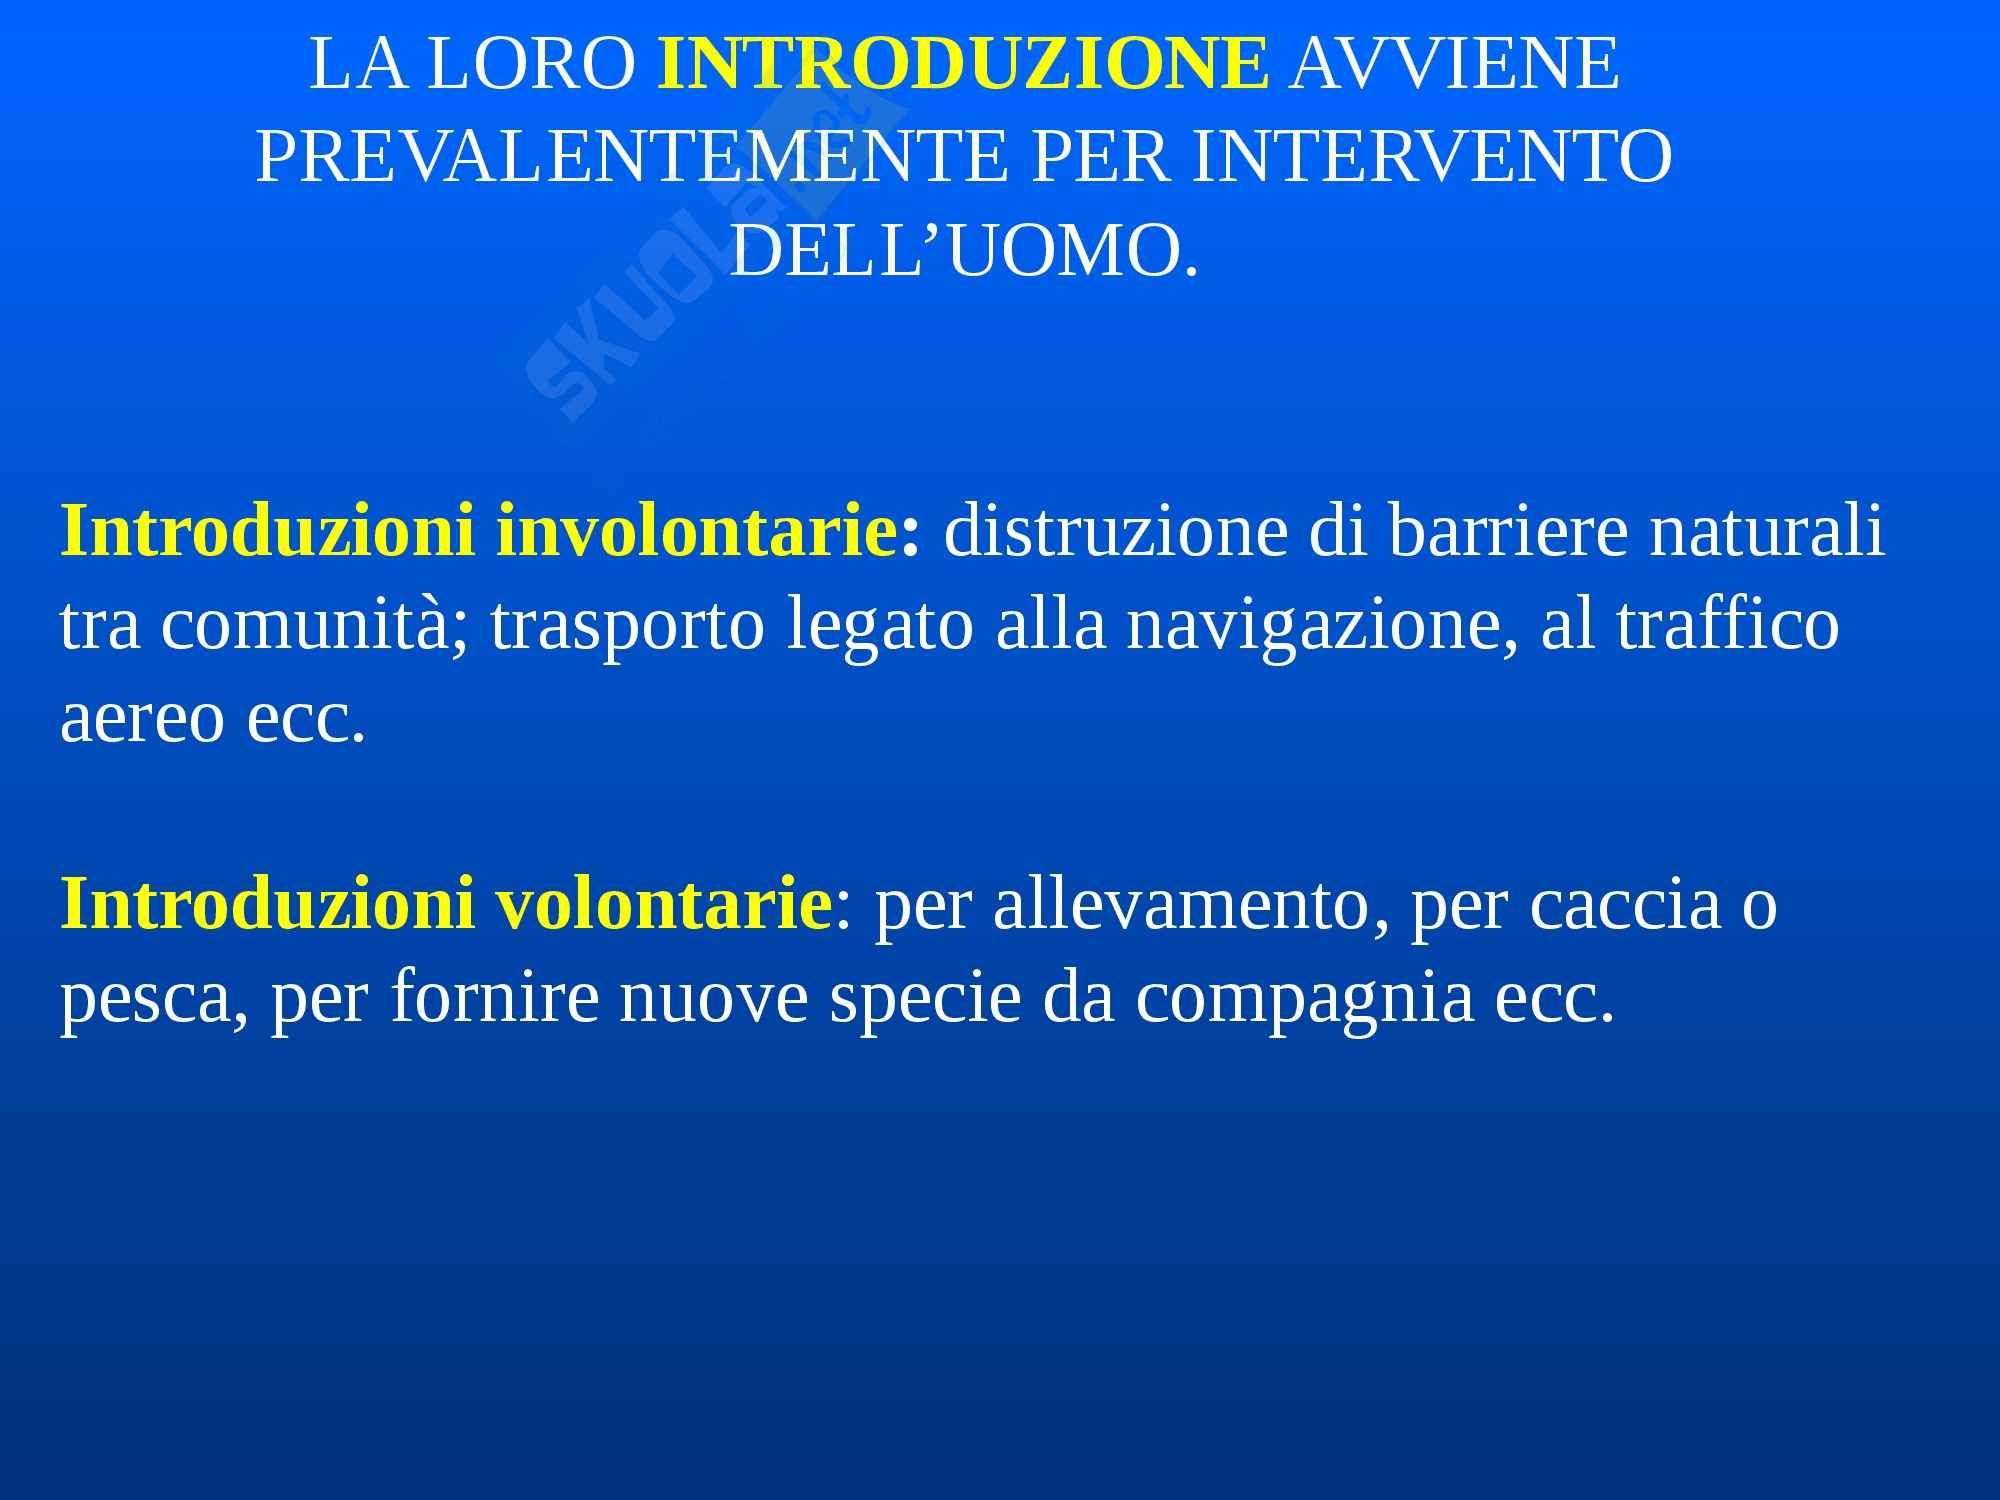 Zoologia - Le specie alloctone Pag. 2